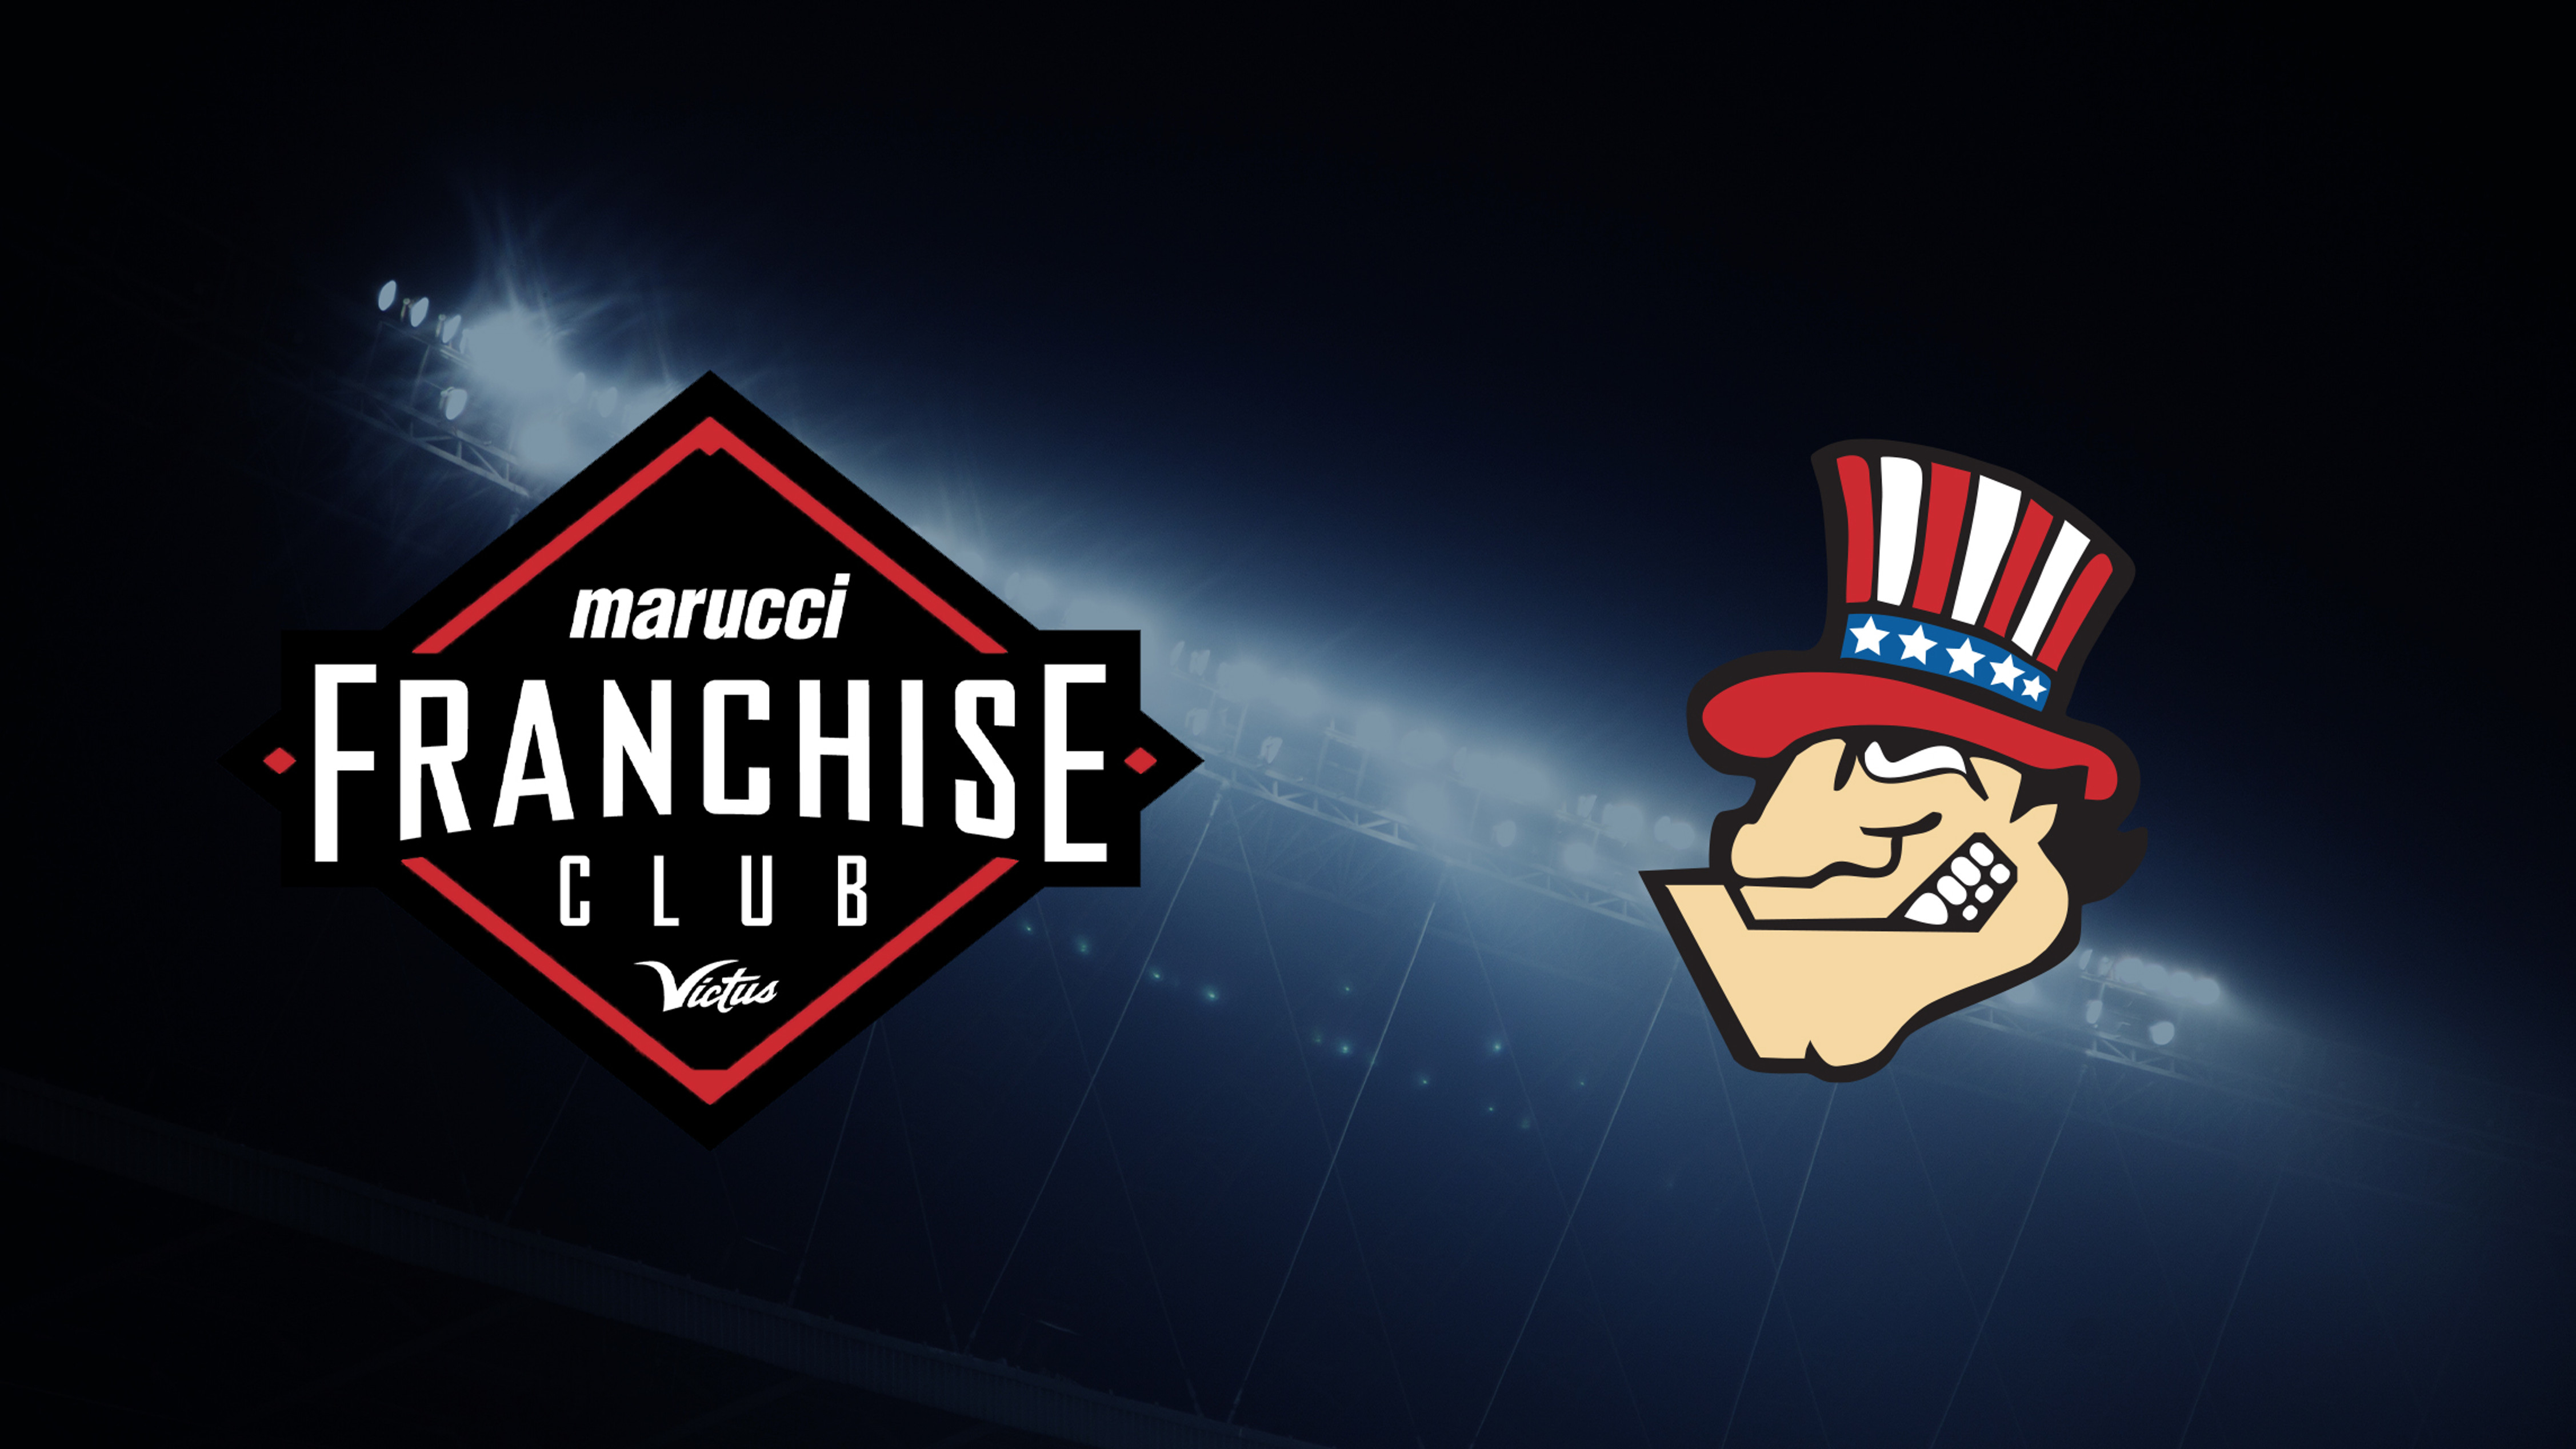 Midwest Nationals Plan a Name Change as Part of Franchise Club Agreement